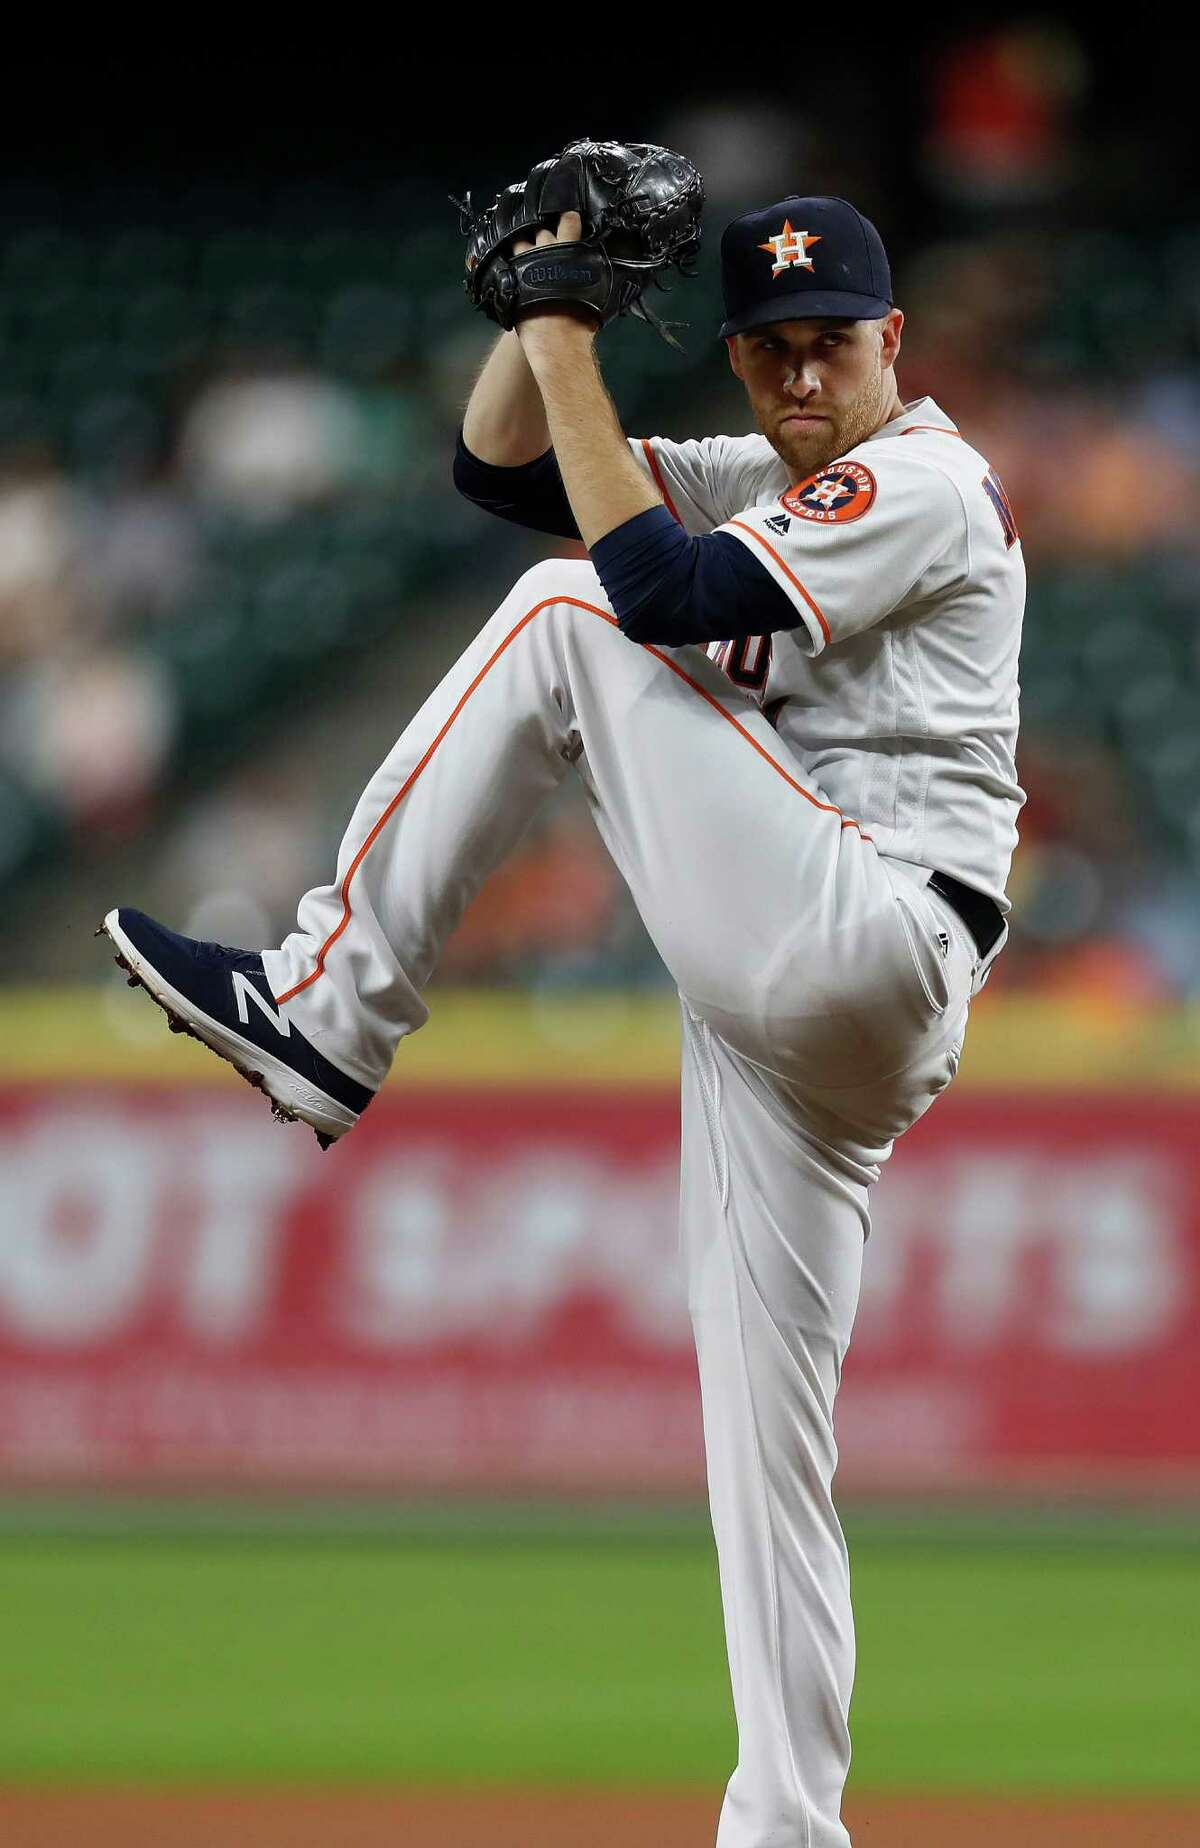 Houston Astros starting pitcher Collin McHugh (31) pitches in the first inning of an MLB game at Minute Maid Park, Monday, Sept. 26, 2016 in Houston.